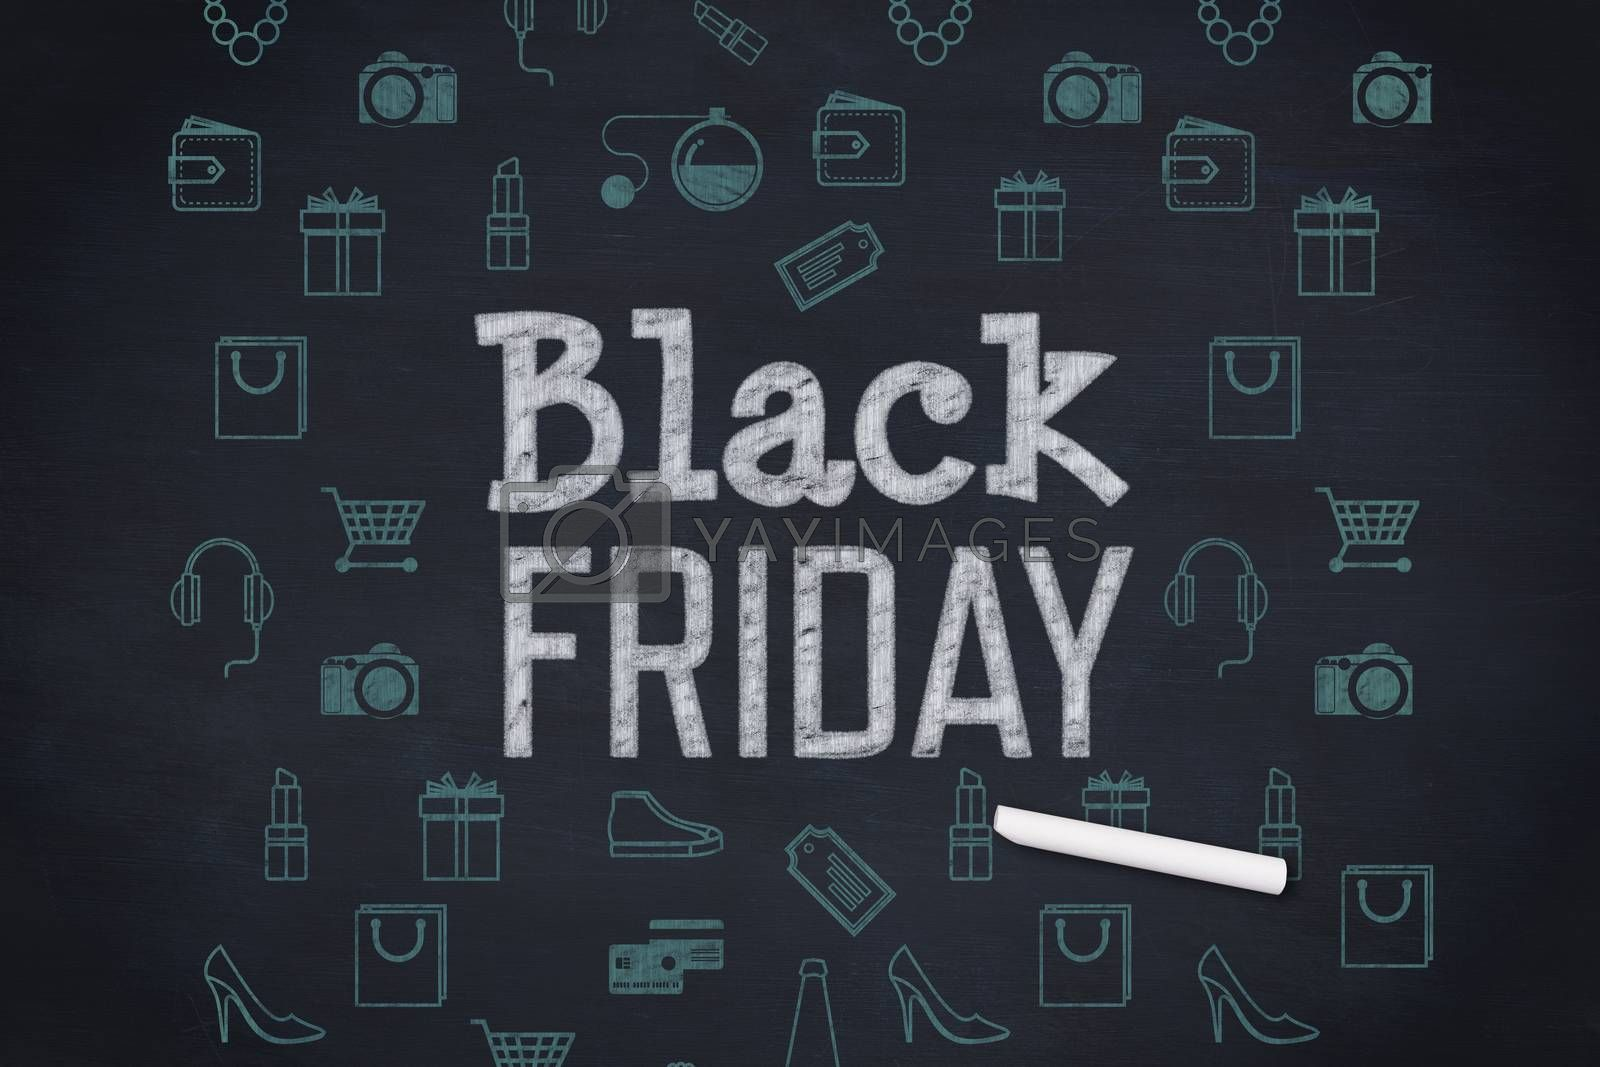 Black friday advert against blackboard with copy space